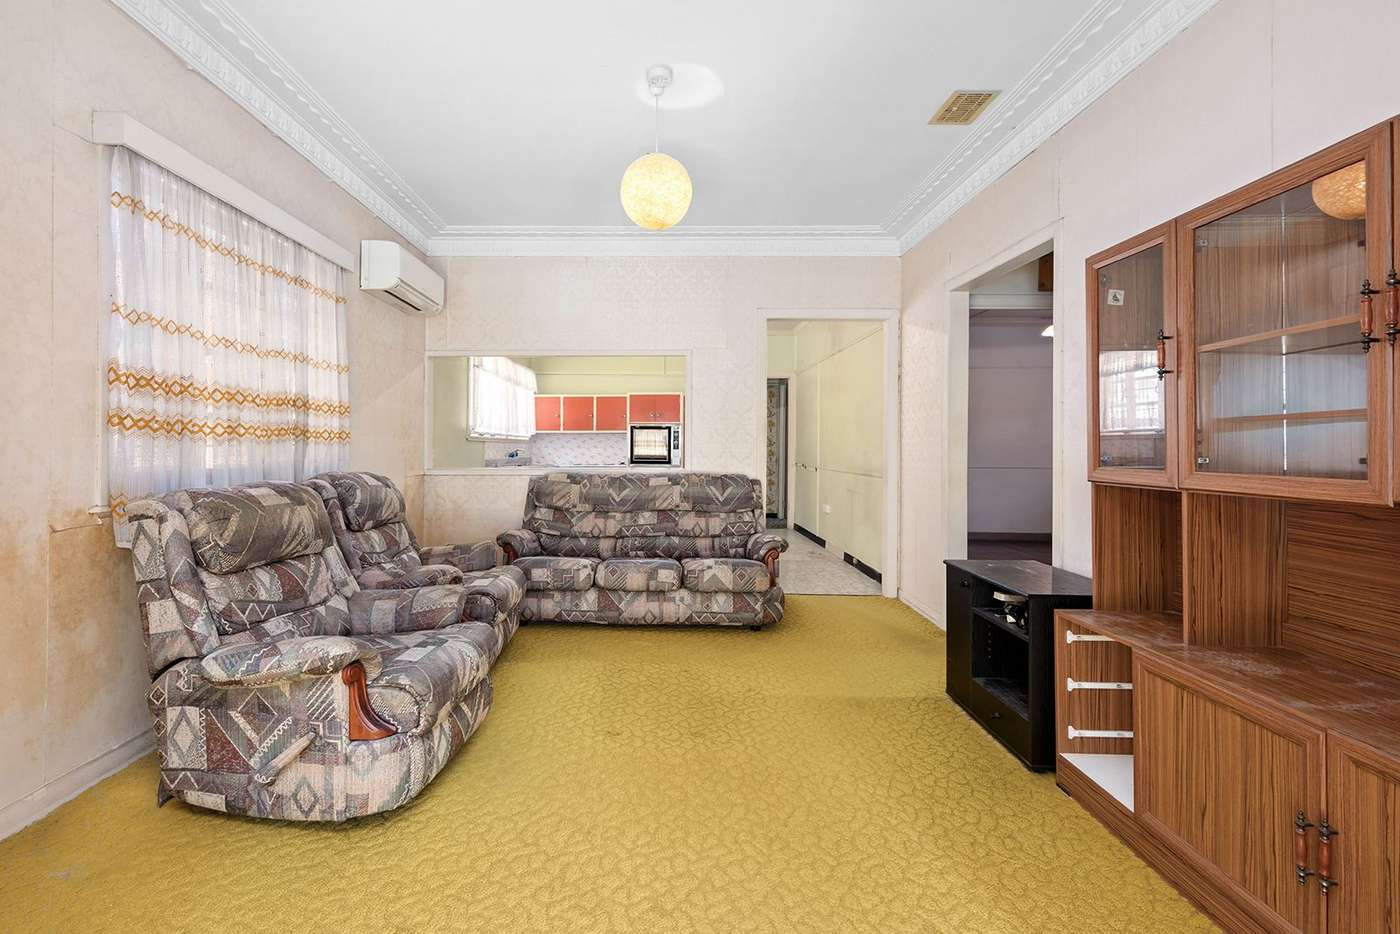 Sixth view of Homely house listing, 84 Daisy Street, Newmarket QLD 4051